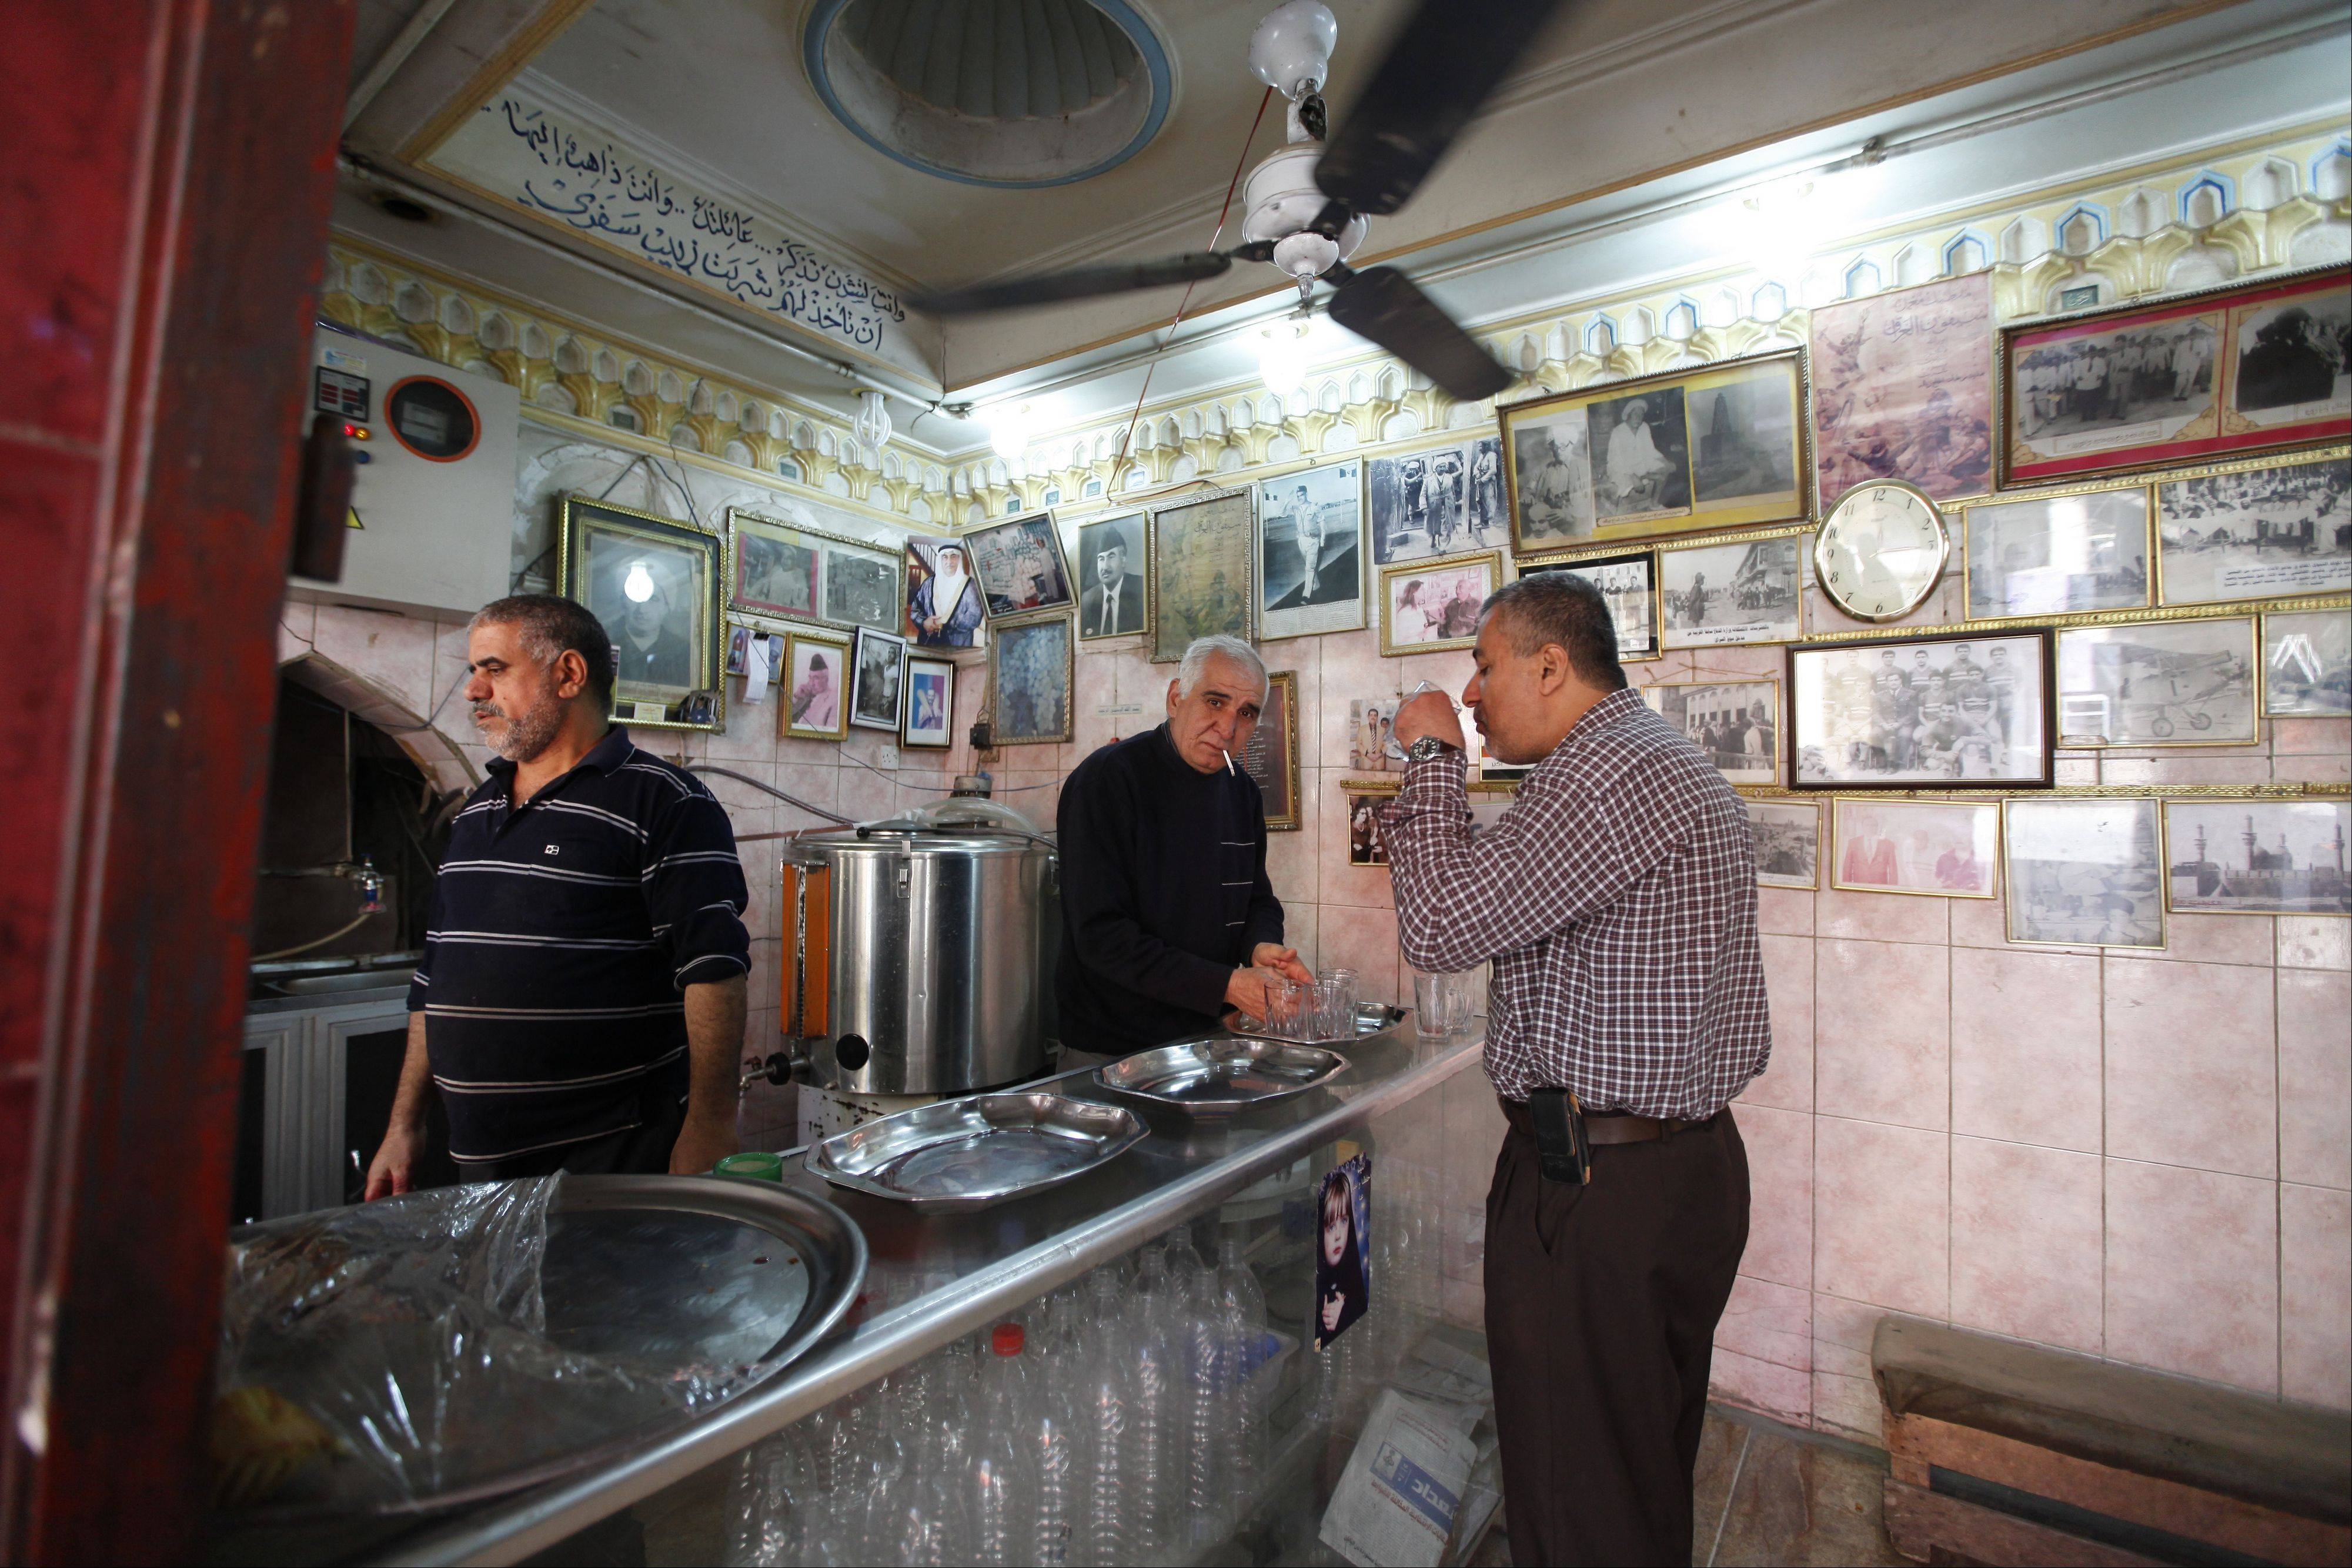 A customer sips juice at the Haji Zebala juice shop in Baghdad. It's easy to forget about the war's hardships inside the shop on the capital's historic Rasheed Street, where they�re still serving up fresh-pressed grape juice like they have for generations.